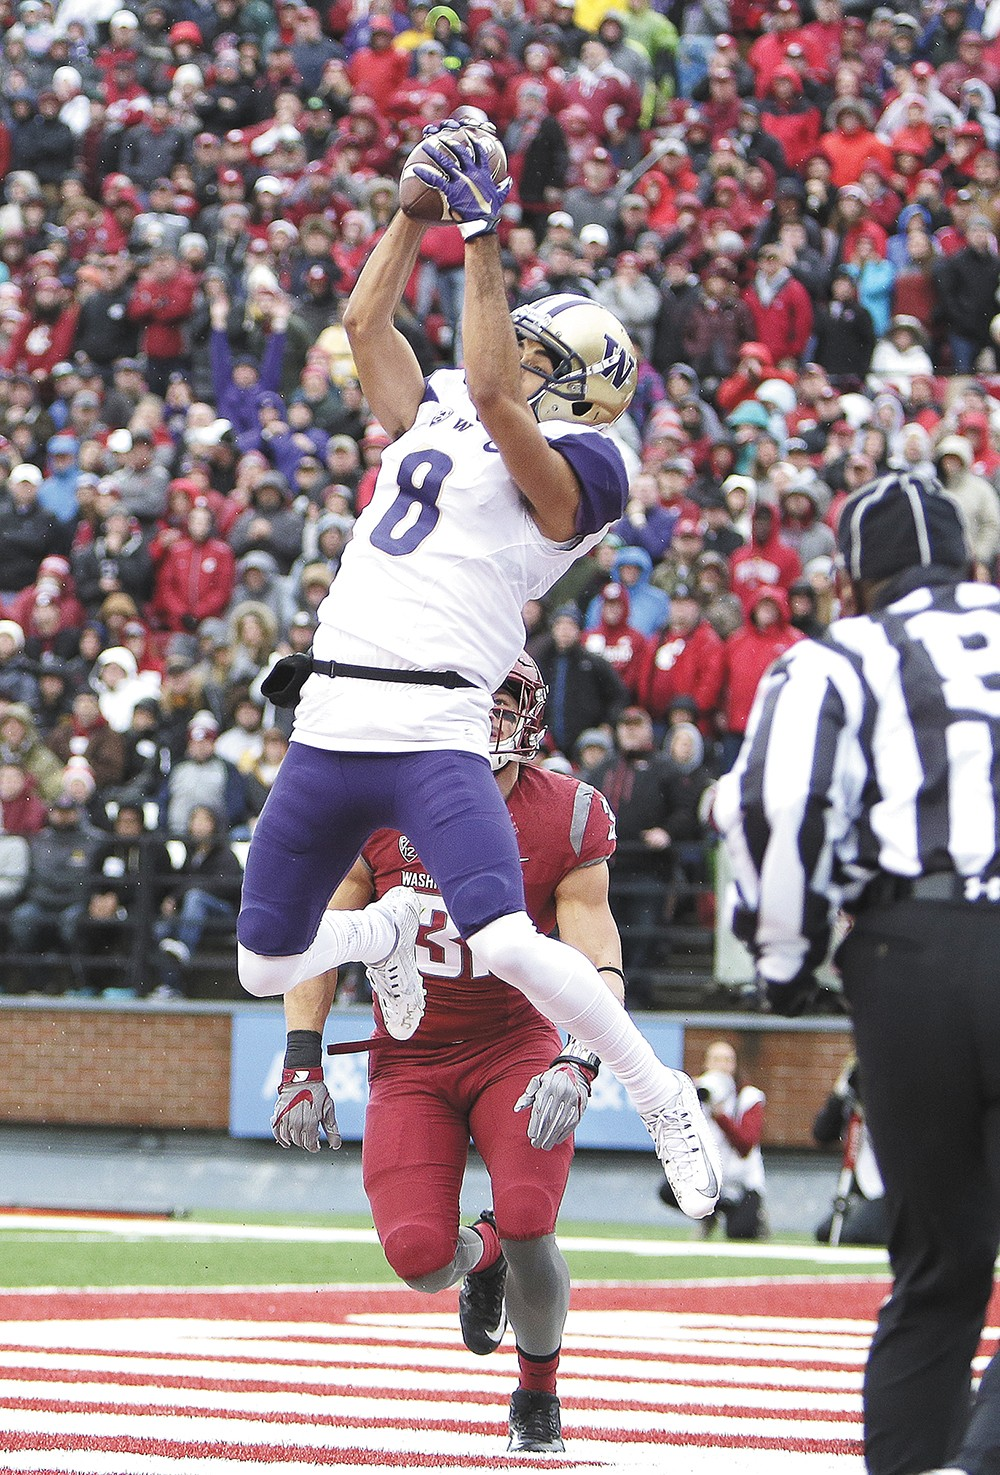 UW's Dante Pettis hauls in one of his two touchdowns. - YOUNG KWAK